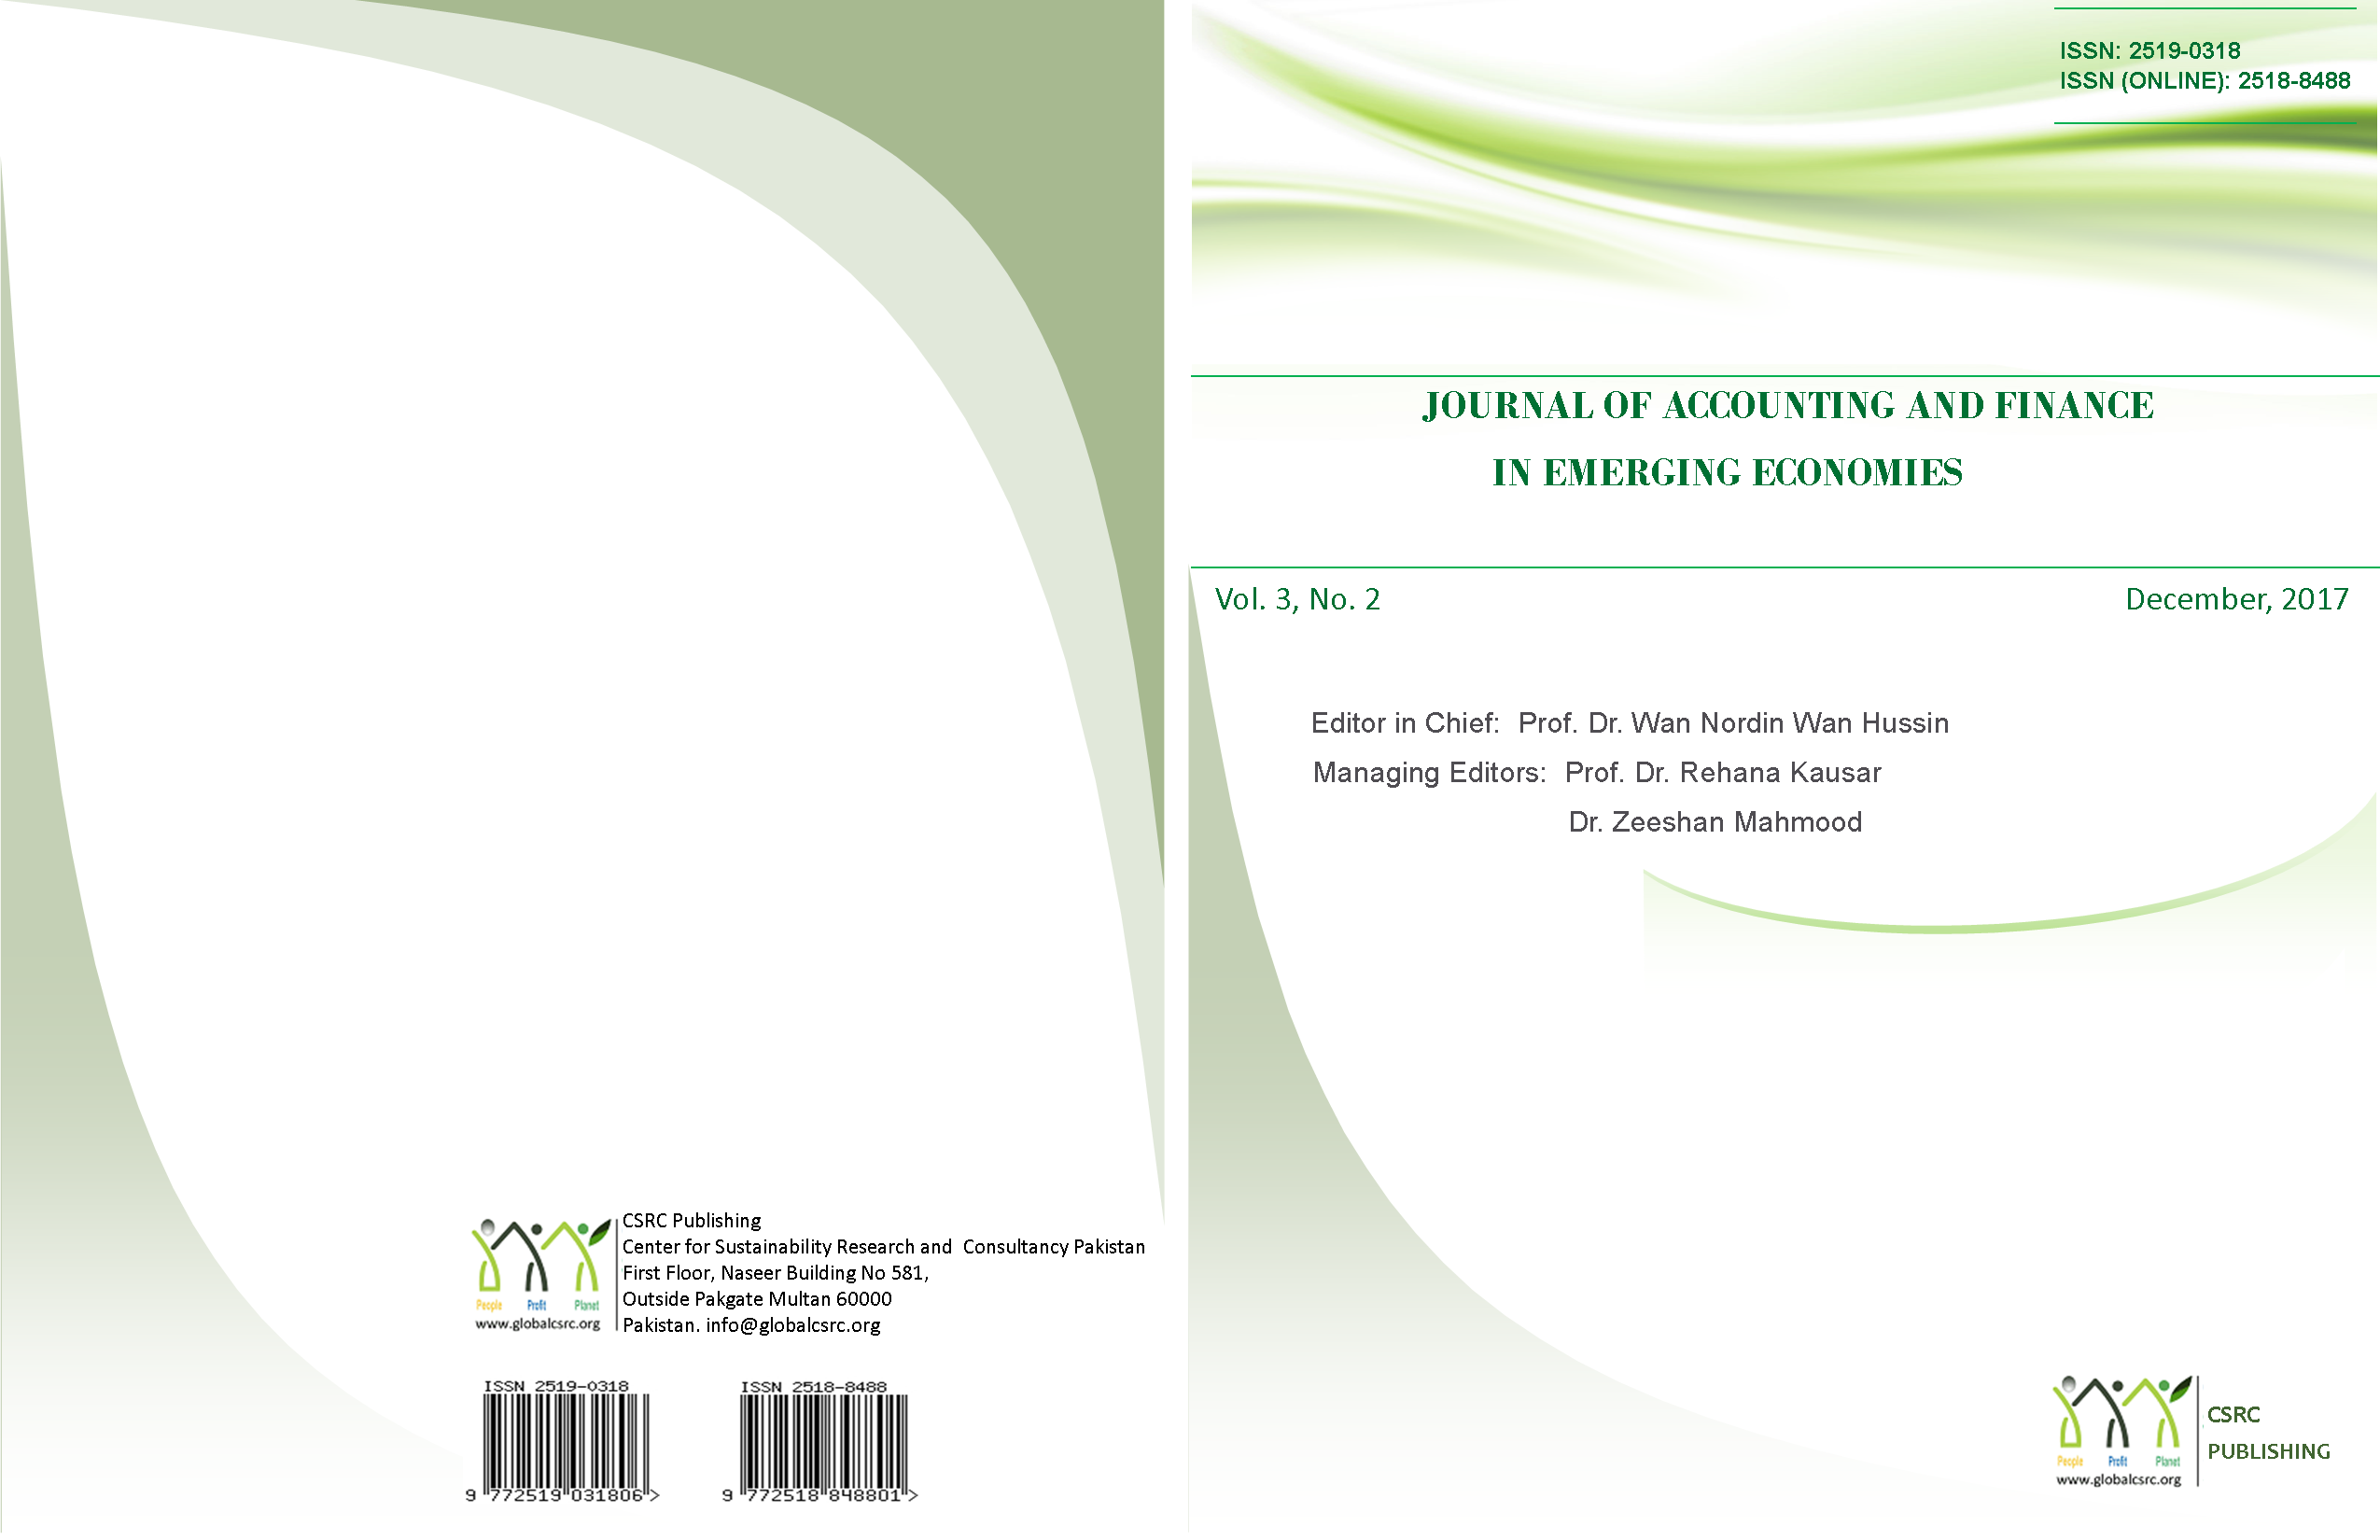 Journal of Accounting and Finance in Emerging Economies. Vol 3, issue 2, 2017